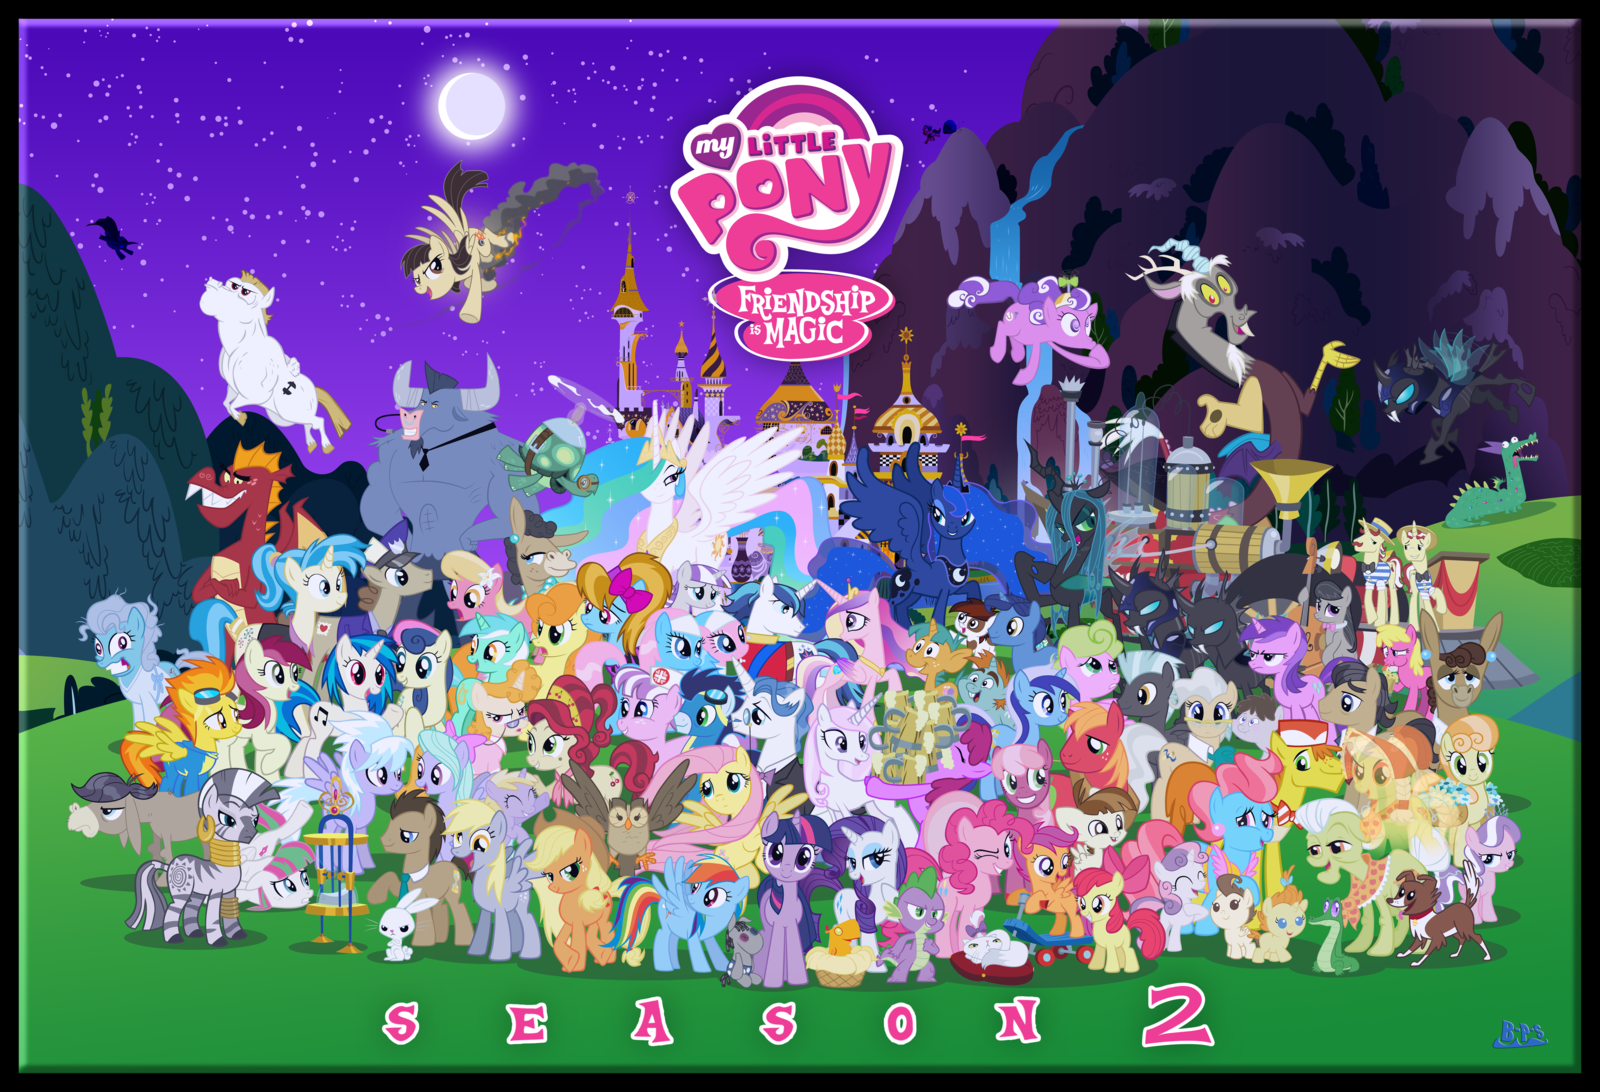 My Little Pony: Friendship Is Magic Backgrounds, Compatible - PC, Mobile, Gadgets| 1600x1092 px